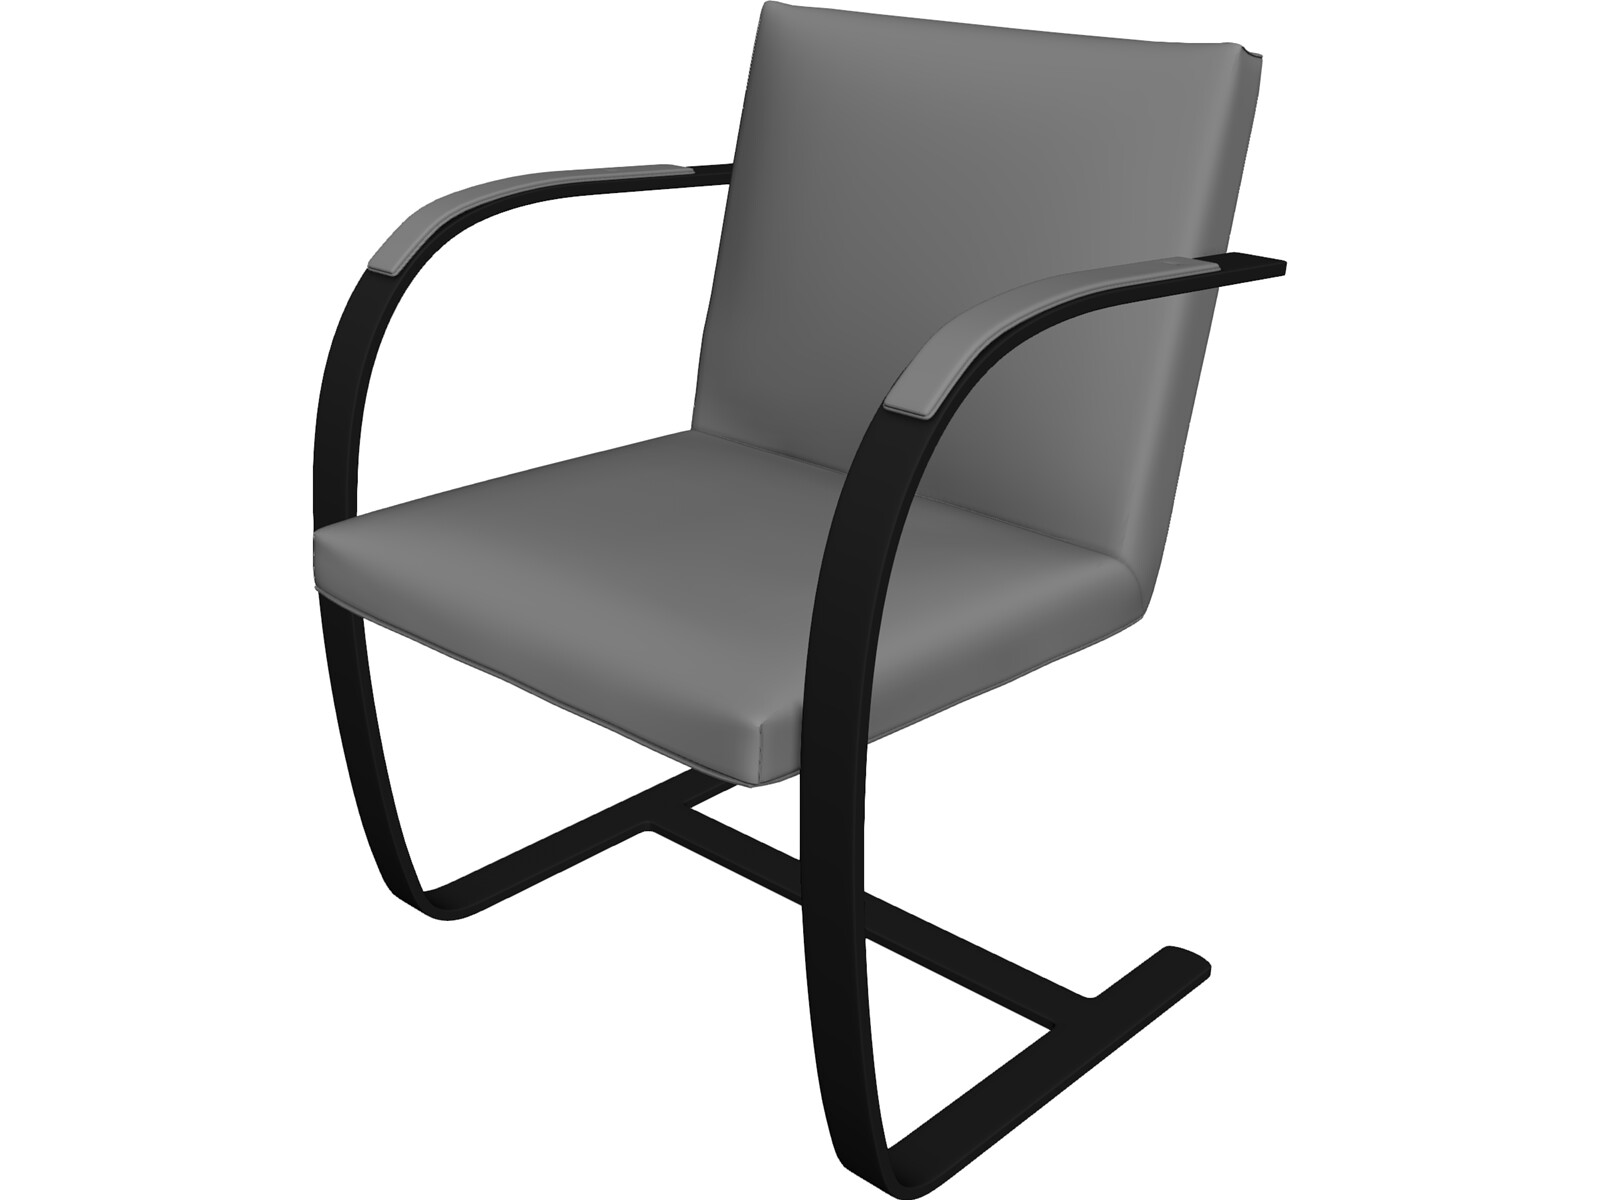 Brno chair 3d model 3d cad browser for Chair 3d model maya